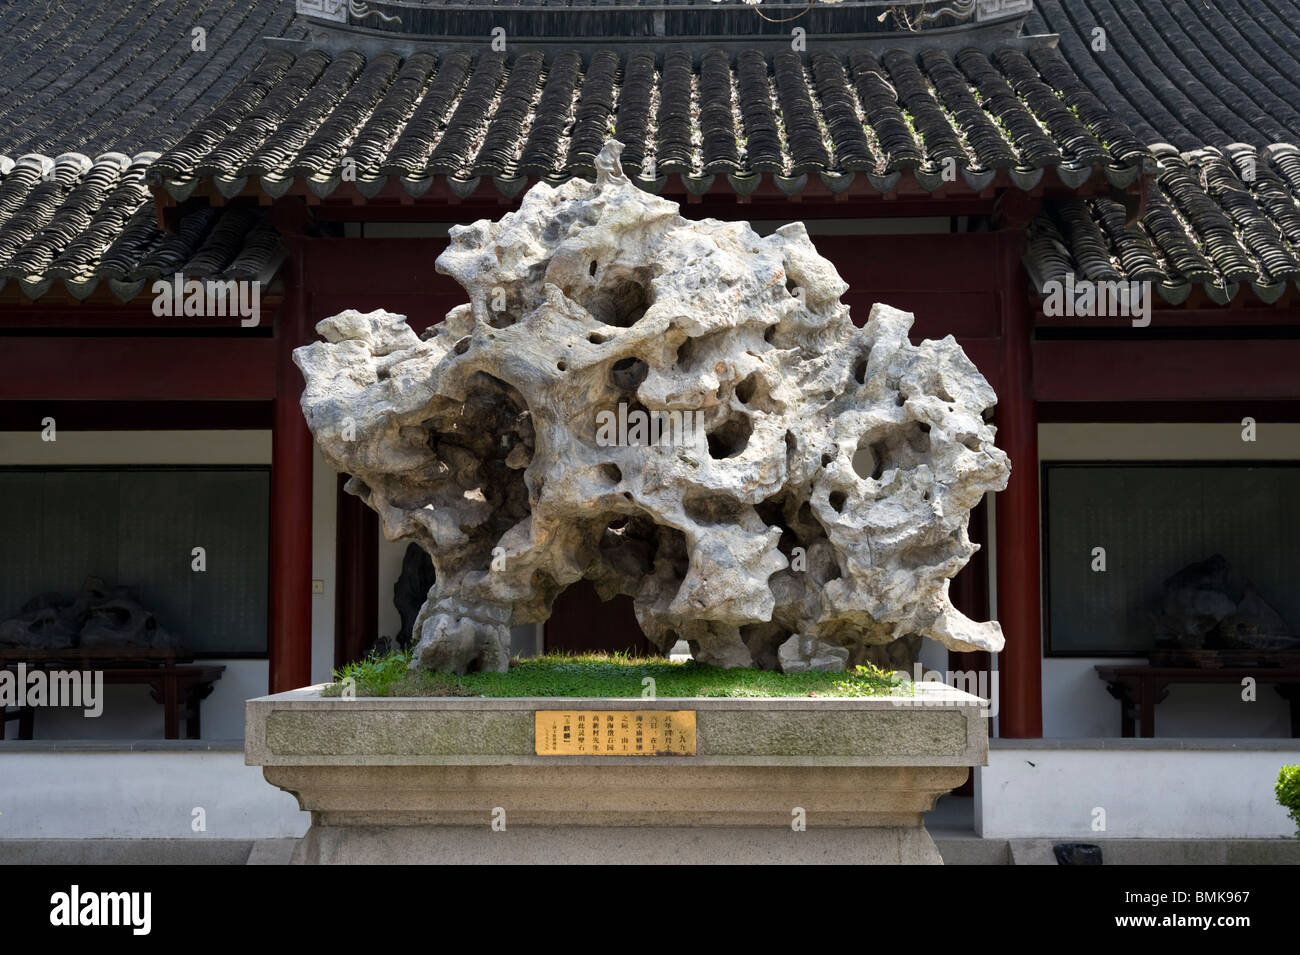 A Chinese scholar's rock made of Lingbi Stone at the Shanghai Confucian Temple, China - Stock Image